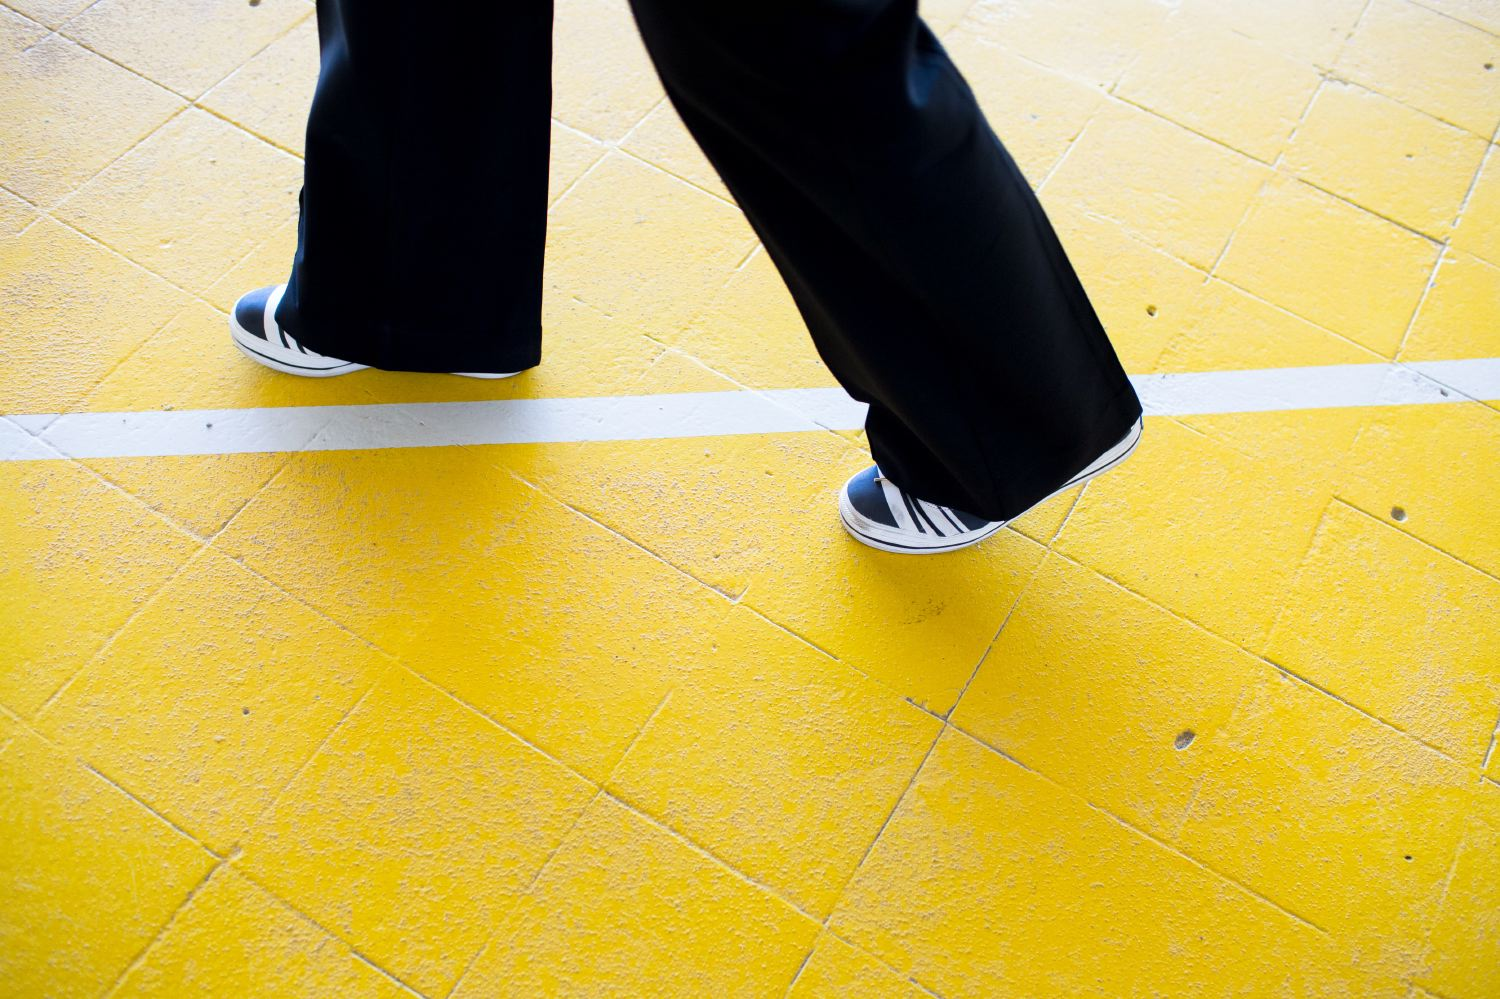 The yellow brick road at Olympic Park.